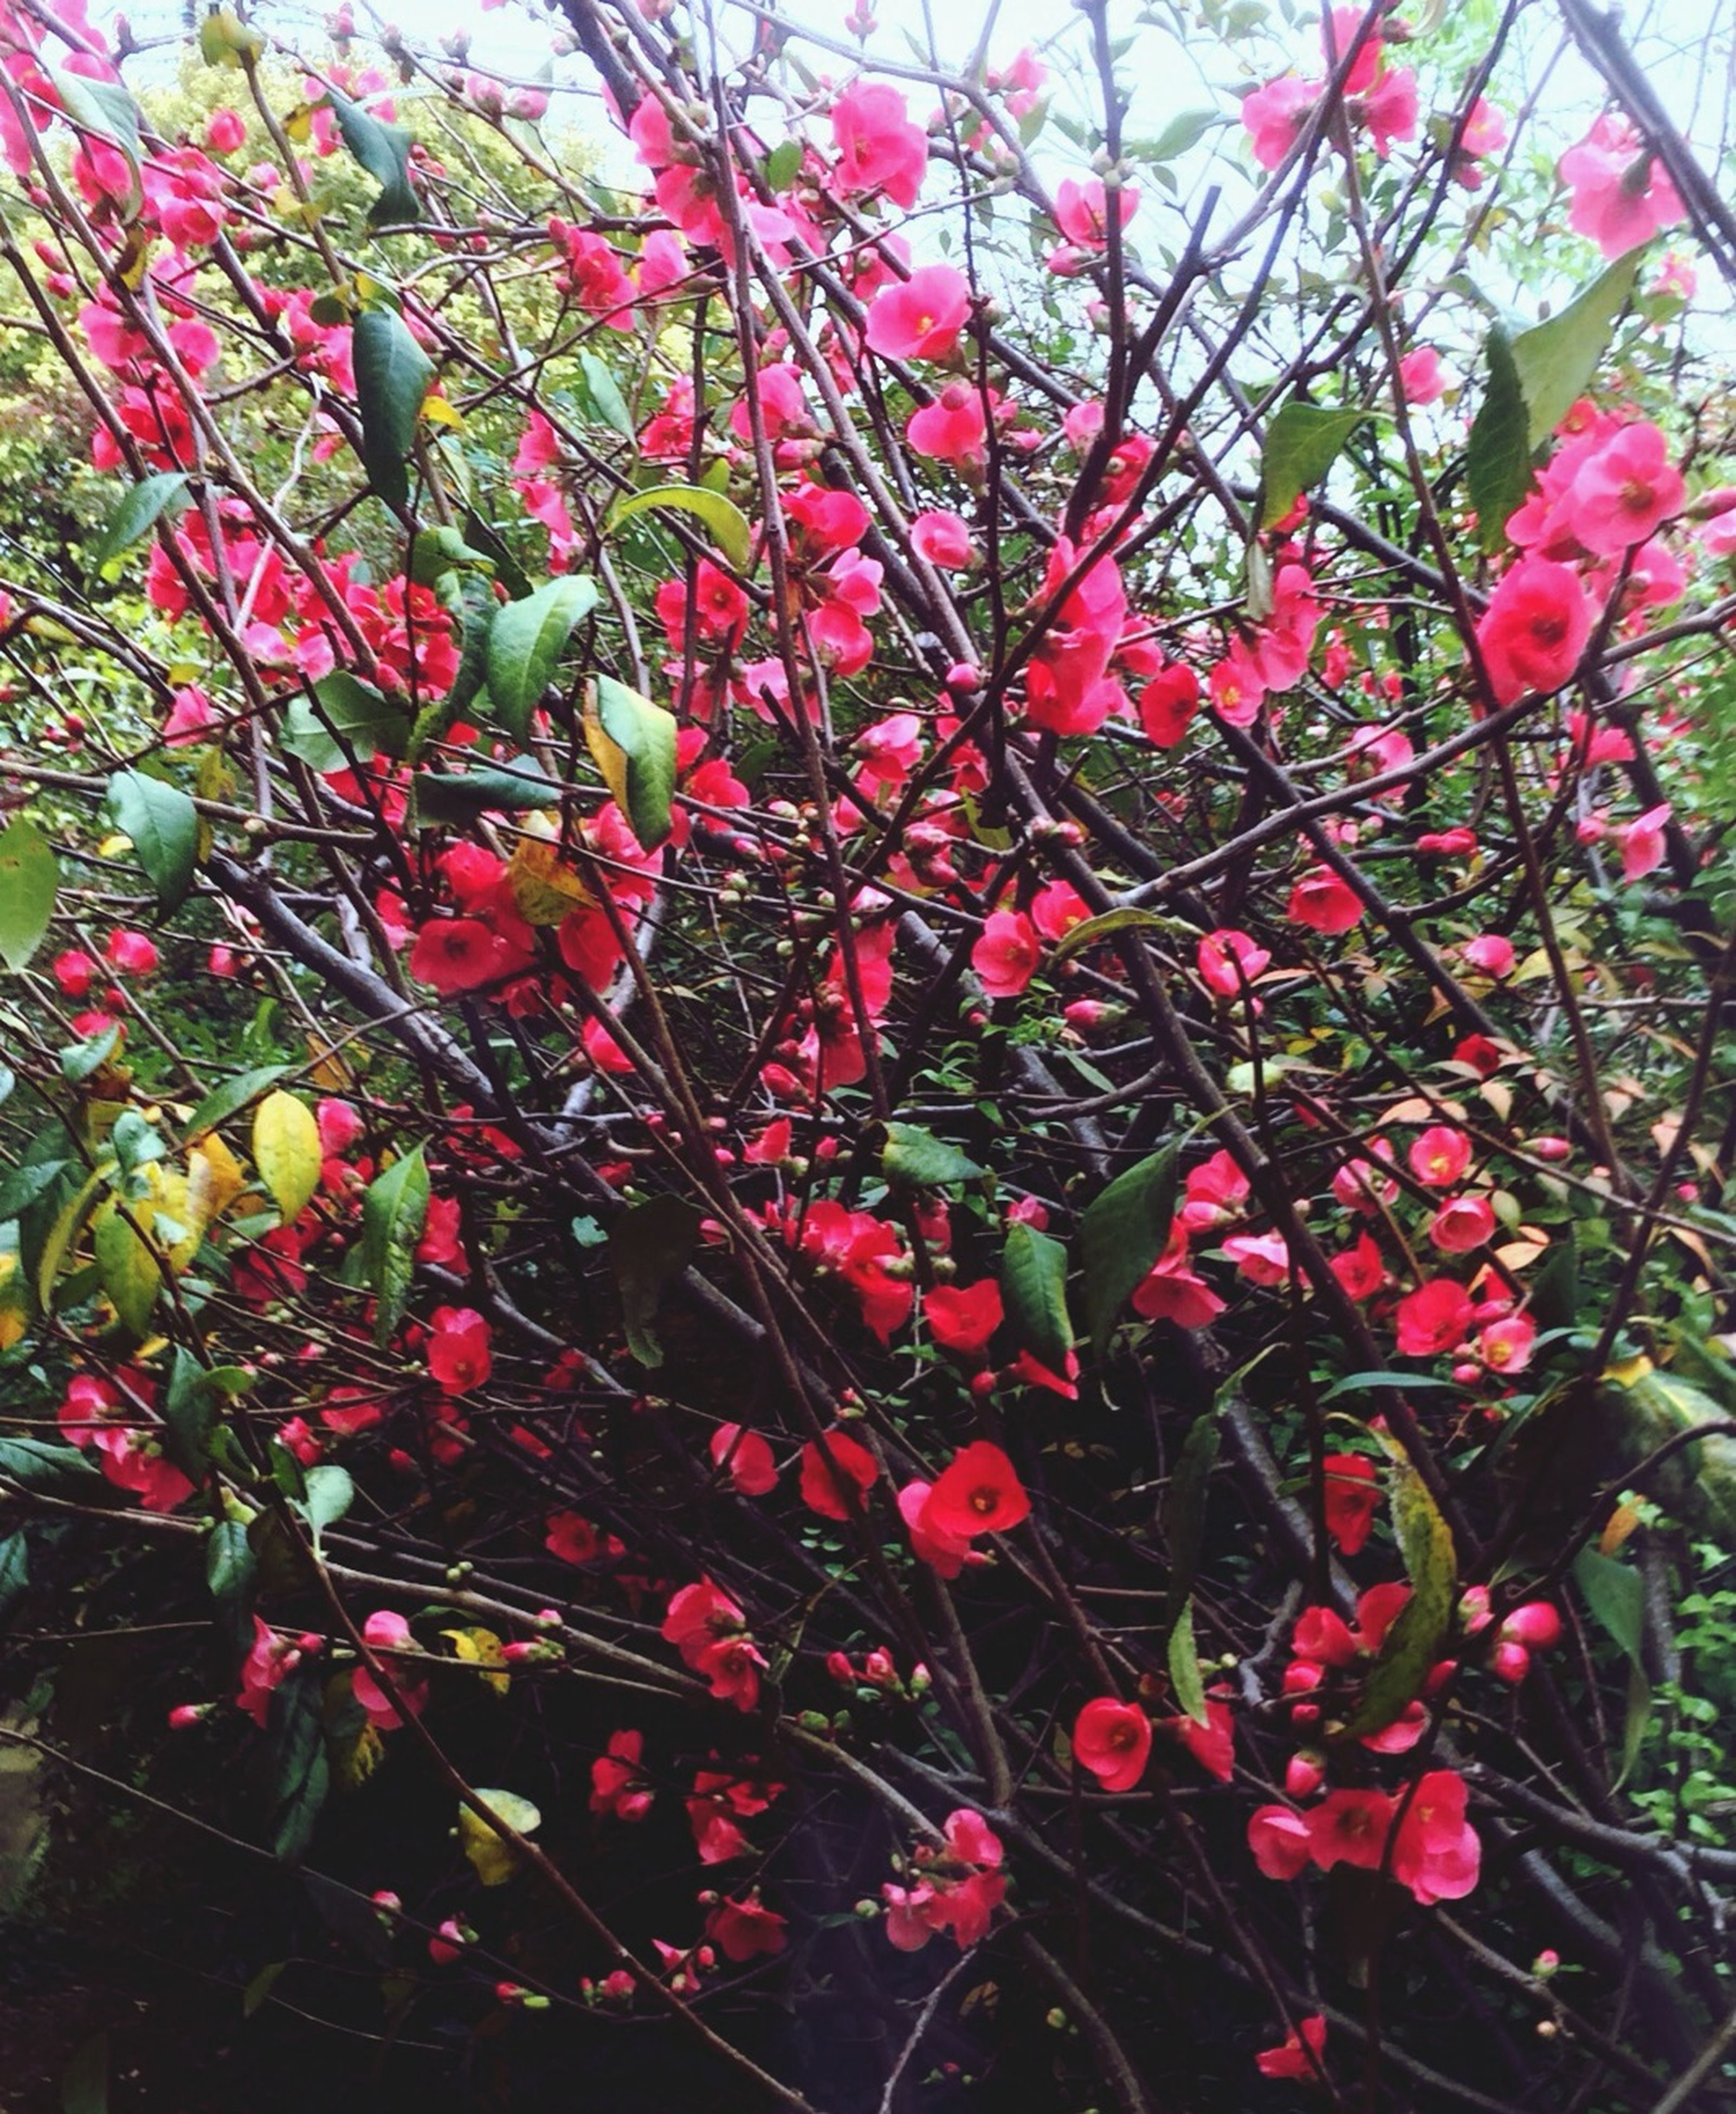 flower, freshness, growth, branch, tree, red, nature, low angle view, fragility, beauty in nature, plant, pink color, blossom, leaf, in bloom, petal, day, outdoors, blooming, no people